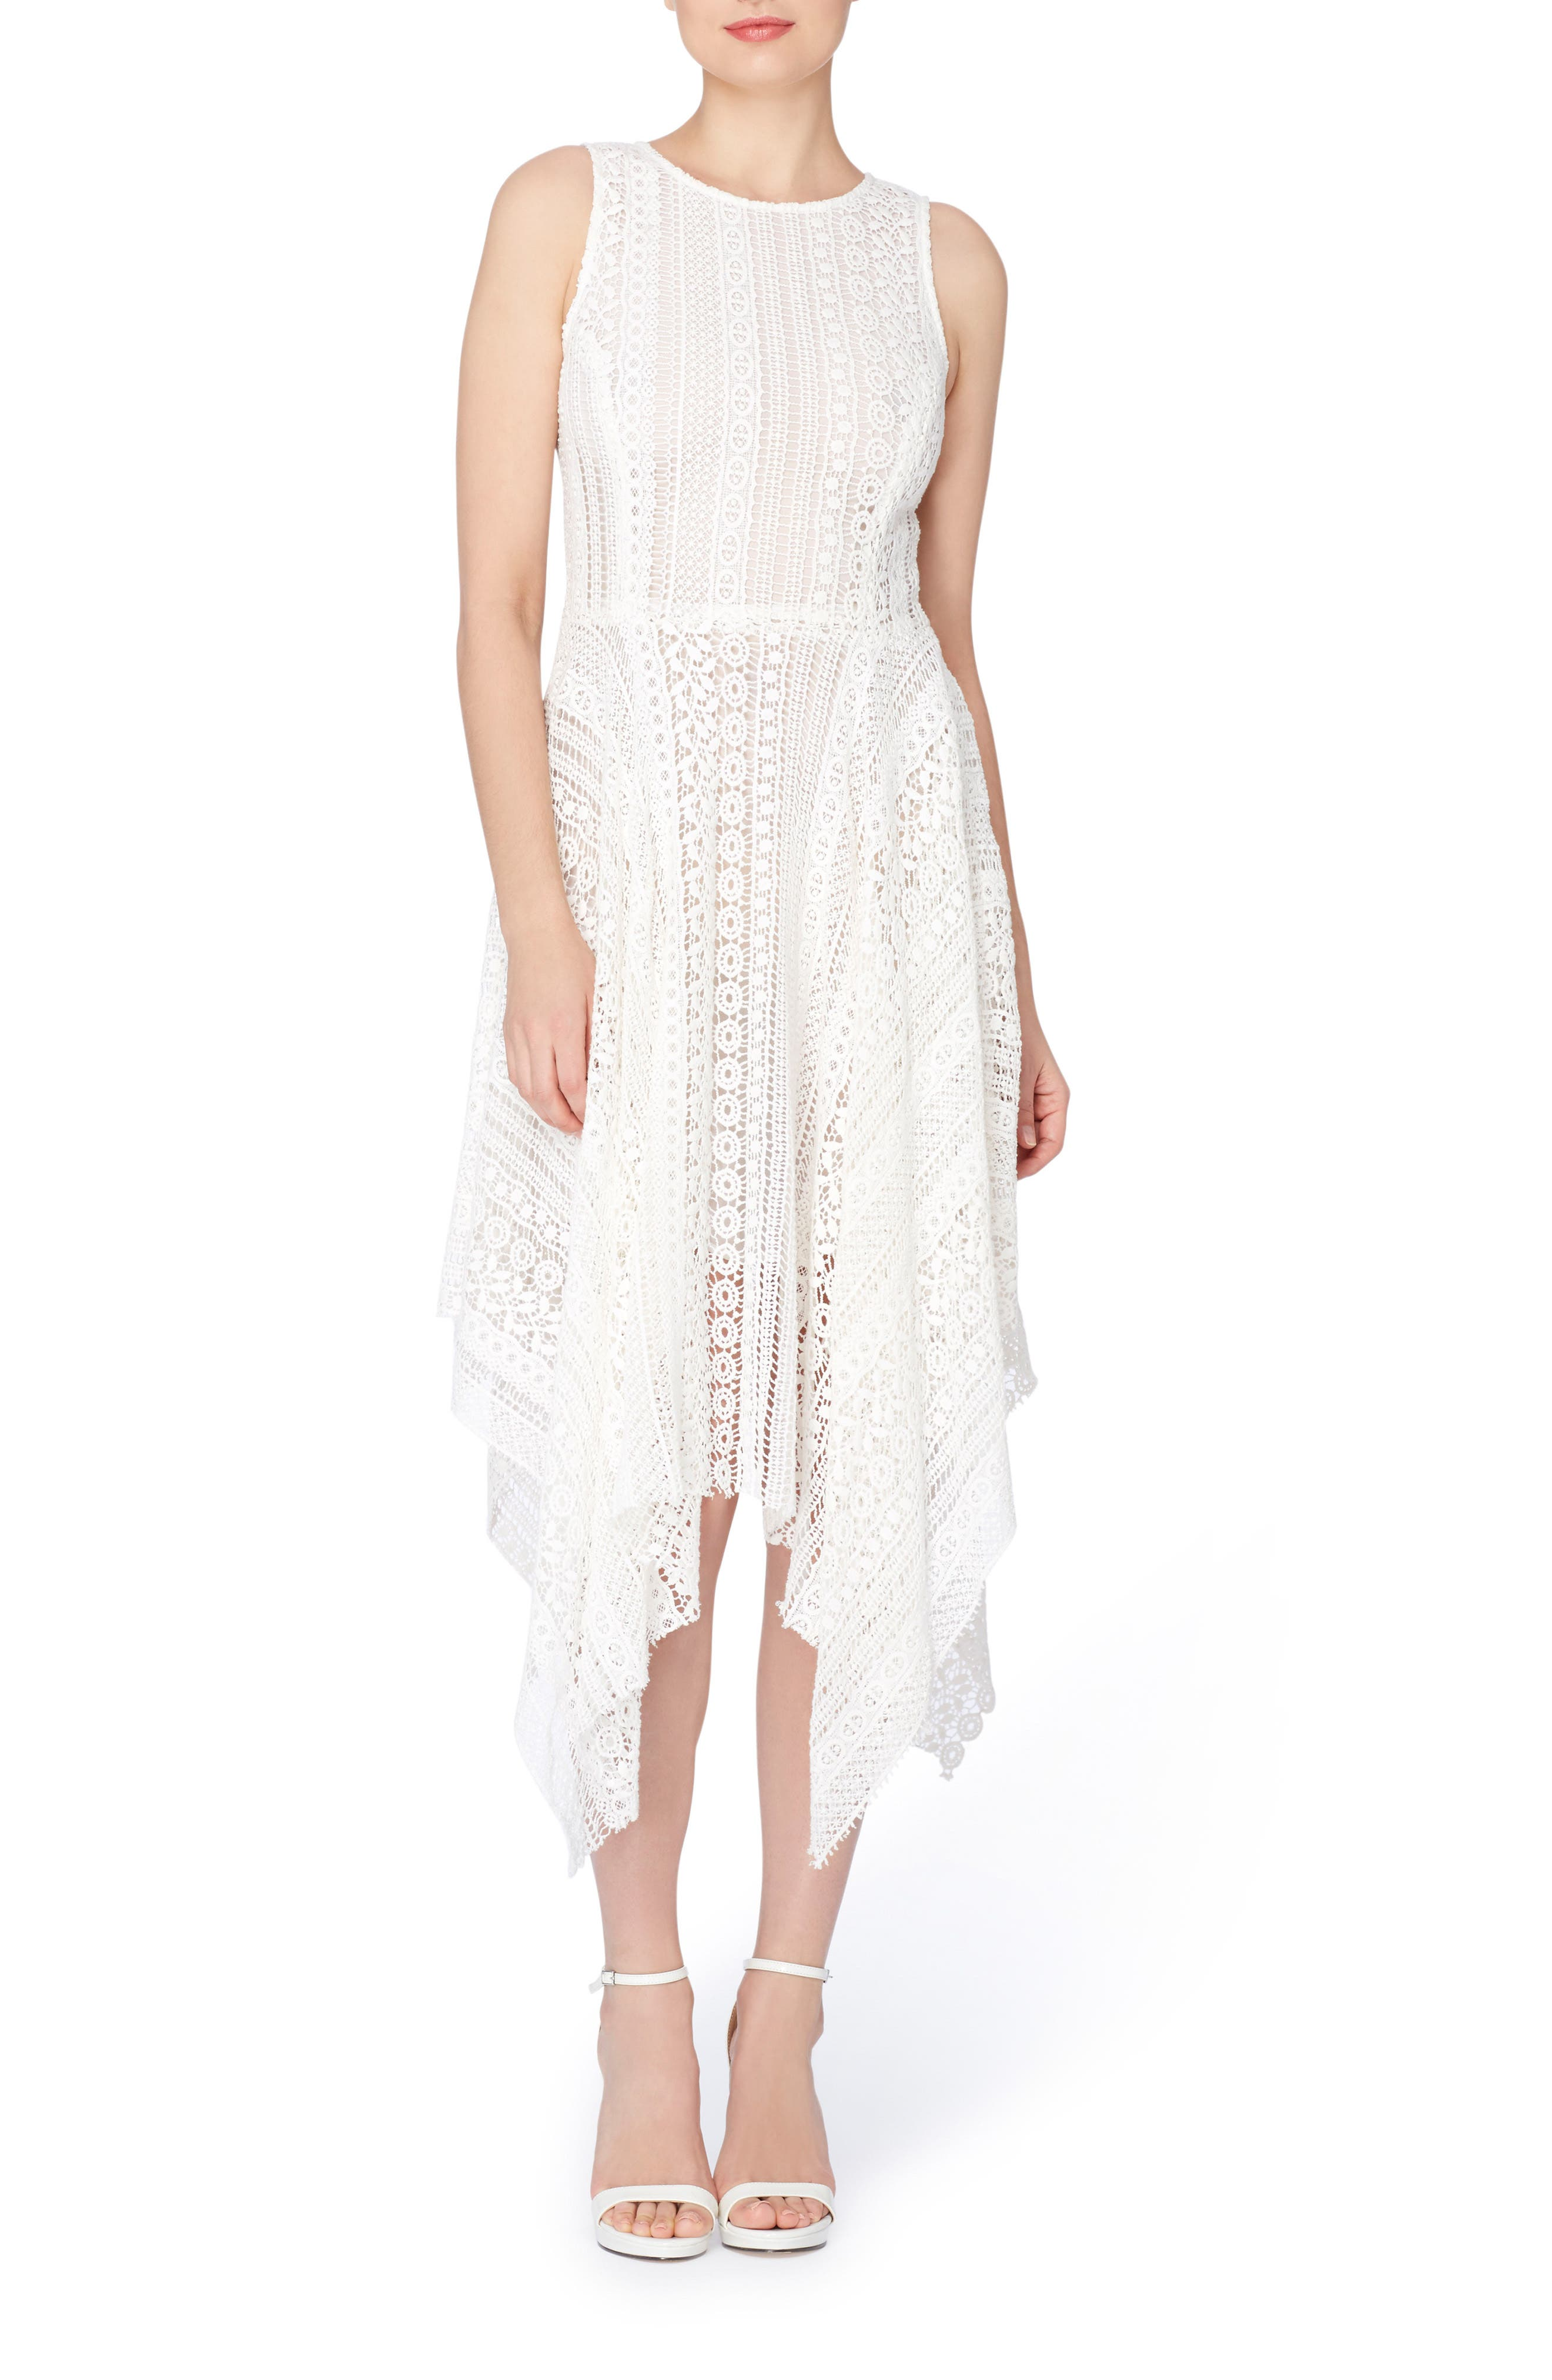 Catherine Catherine Malandrino Webb Lace Midi Dress